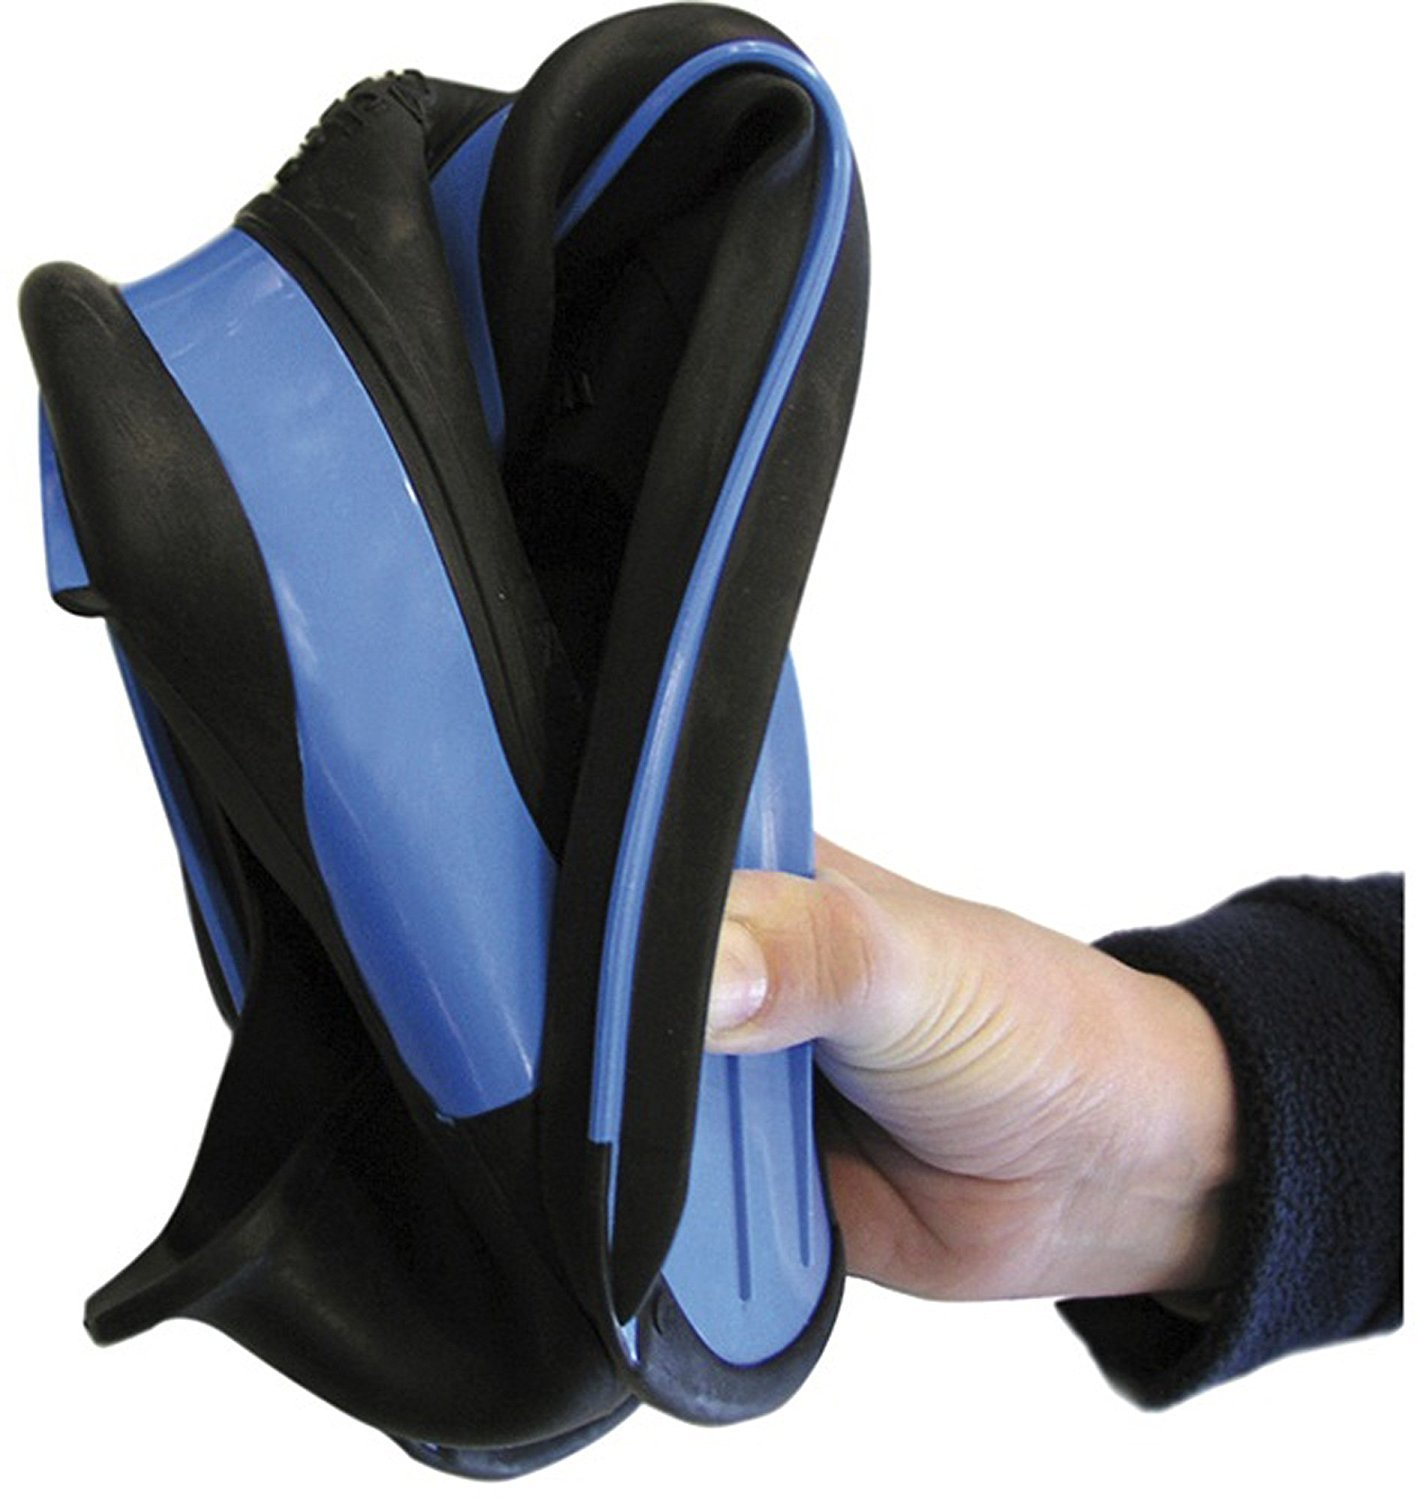 Cressi Light Fin Pool and Training Short Blade Fin with Bag, 8.5/9.5 by Cressi (Image #4)